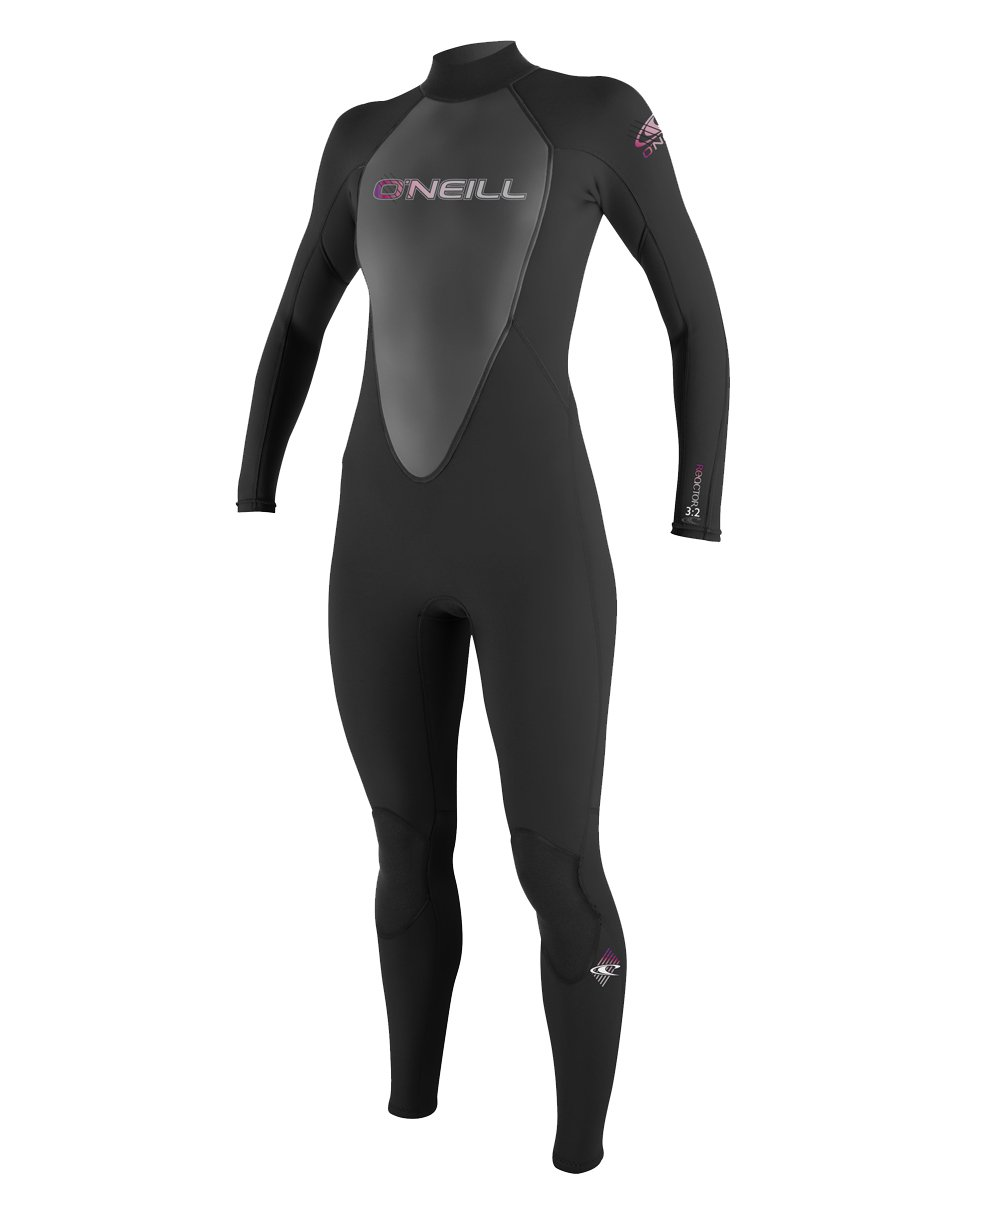 O'Neill   Womens 3/2 mm Reactor Full Suit, Black, 6 by O'Neill Wetsuits